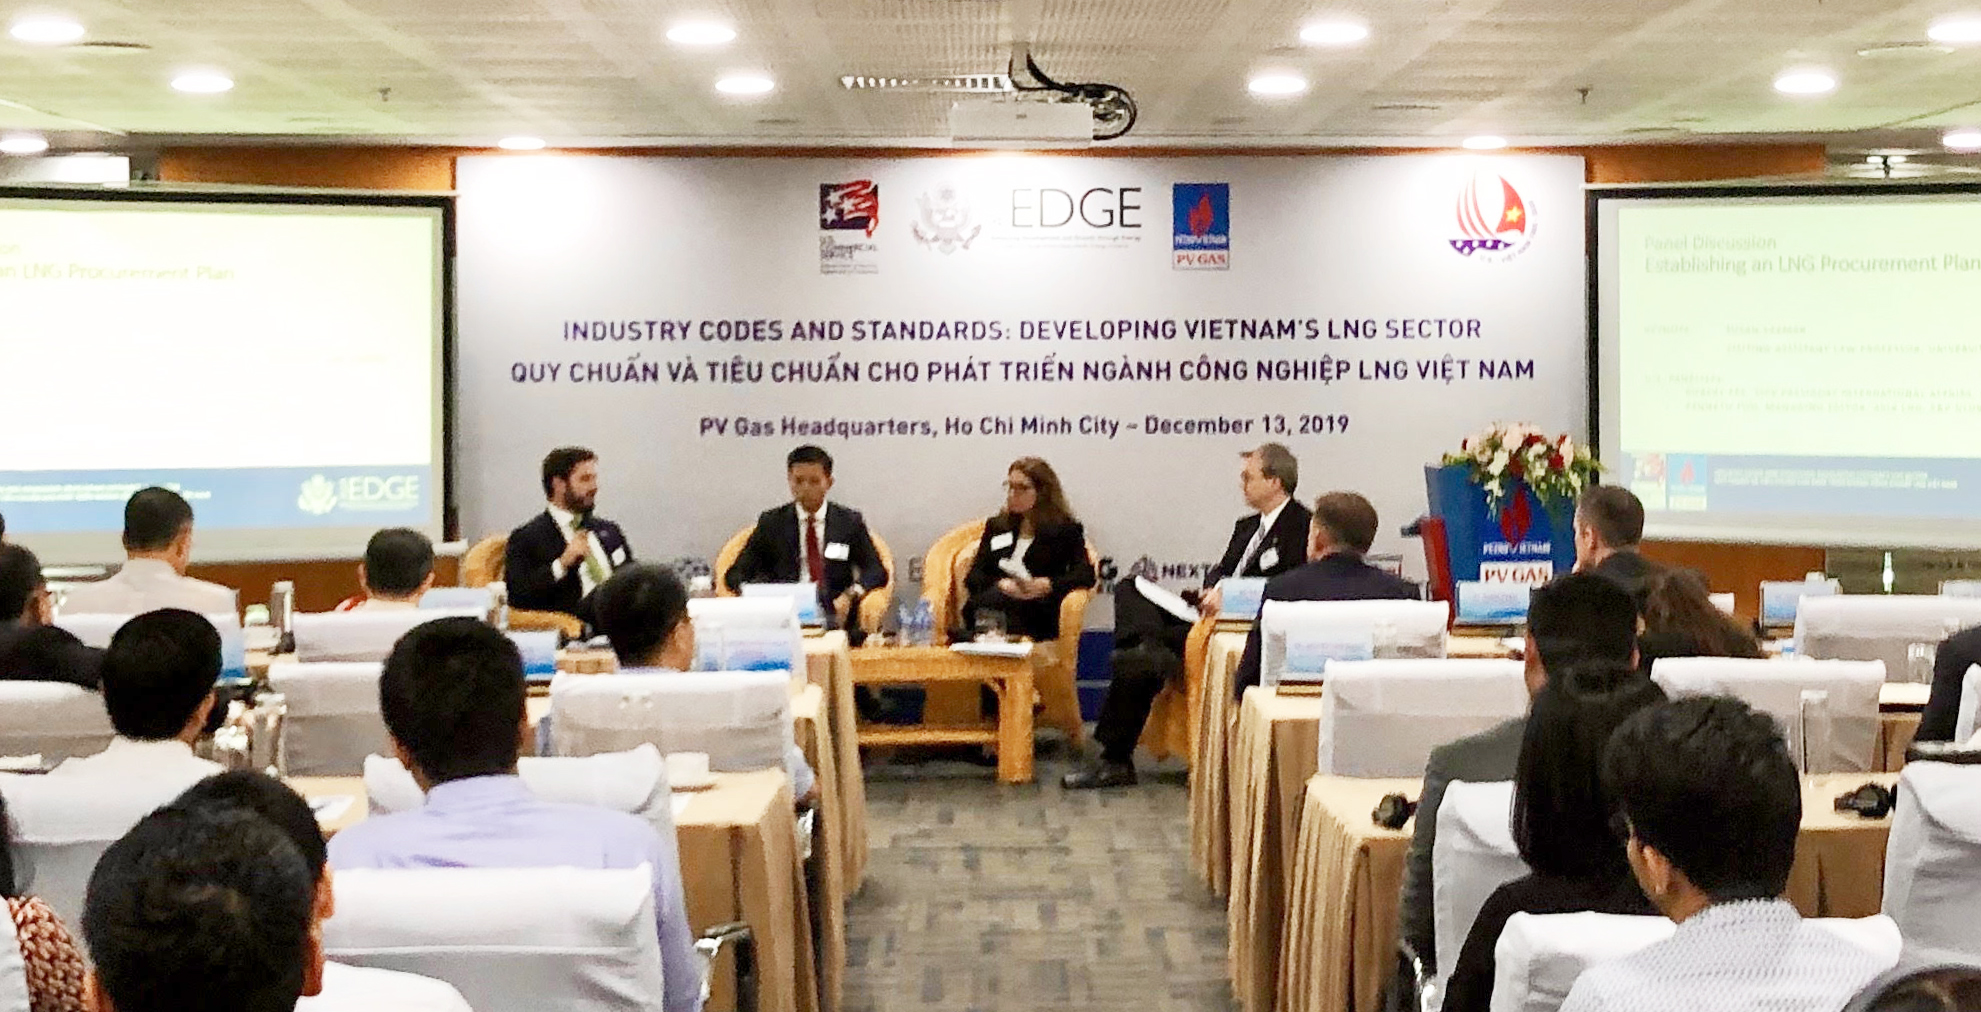 United States partners with Vietnam's PV Gas to define LNG standards